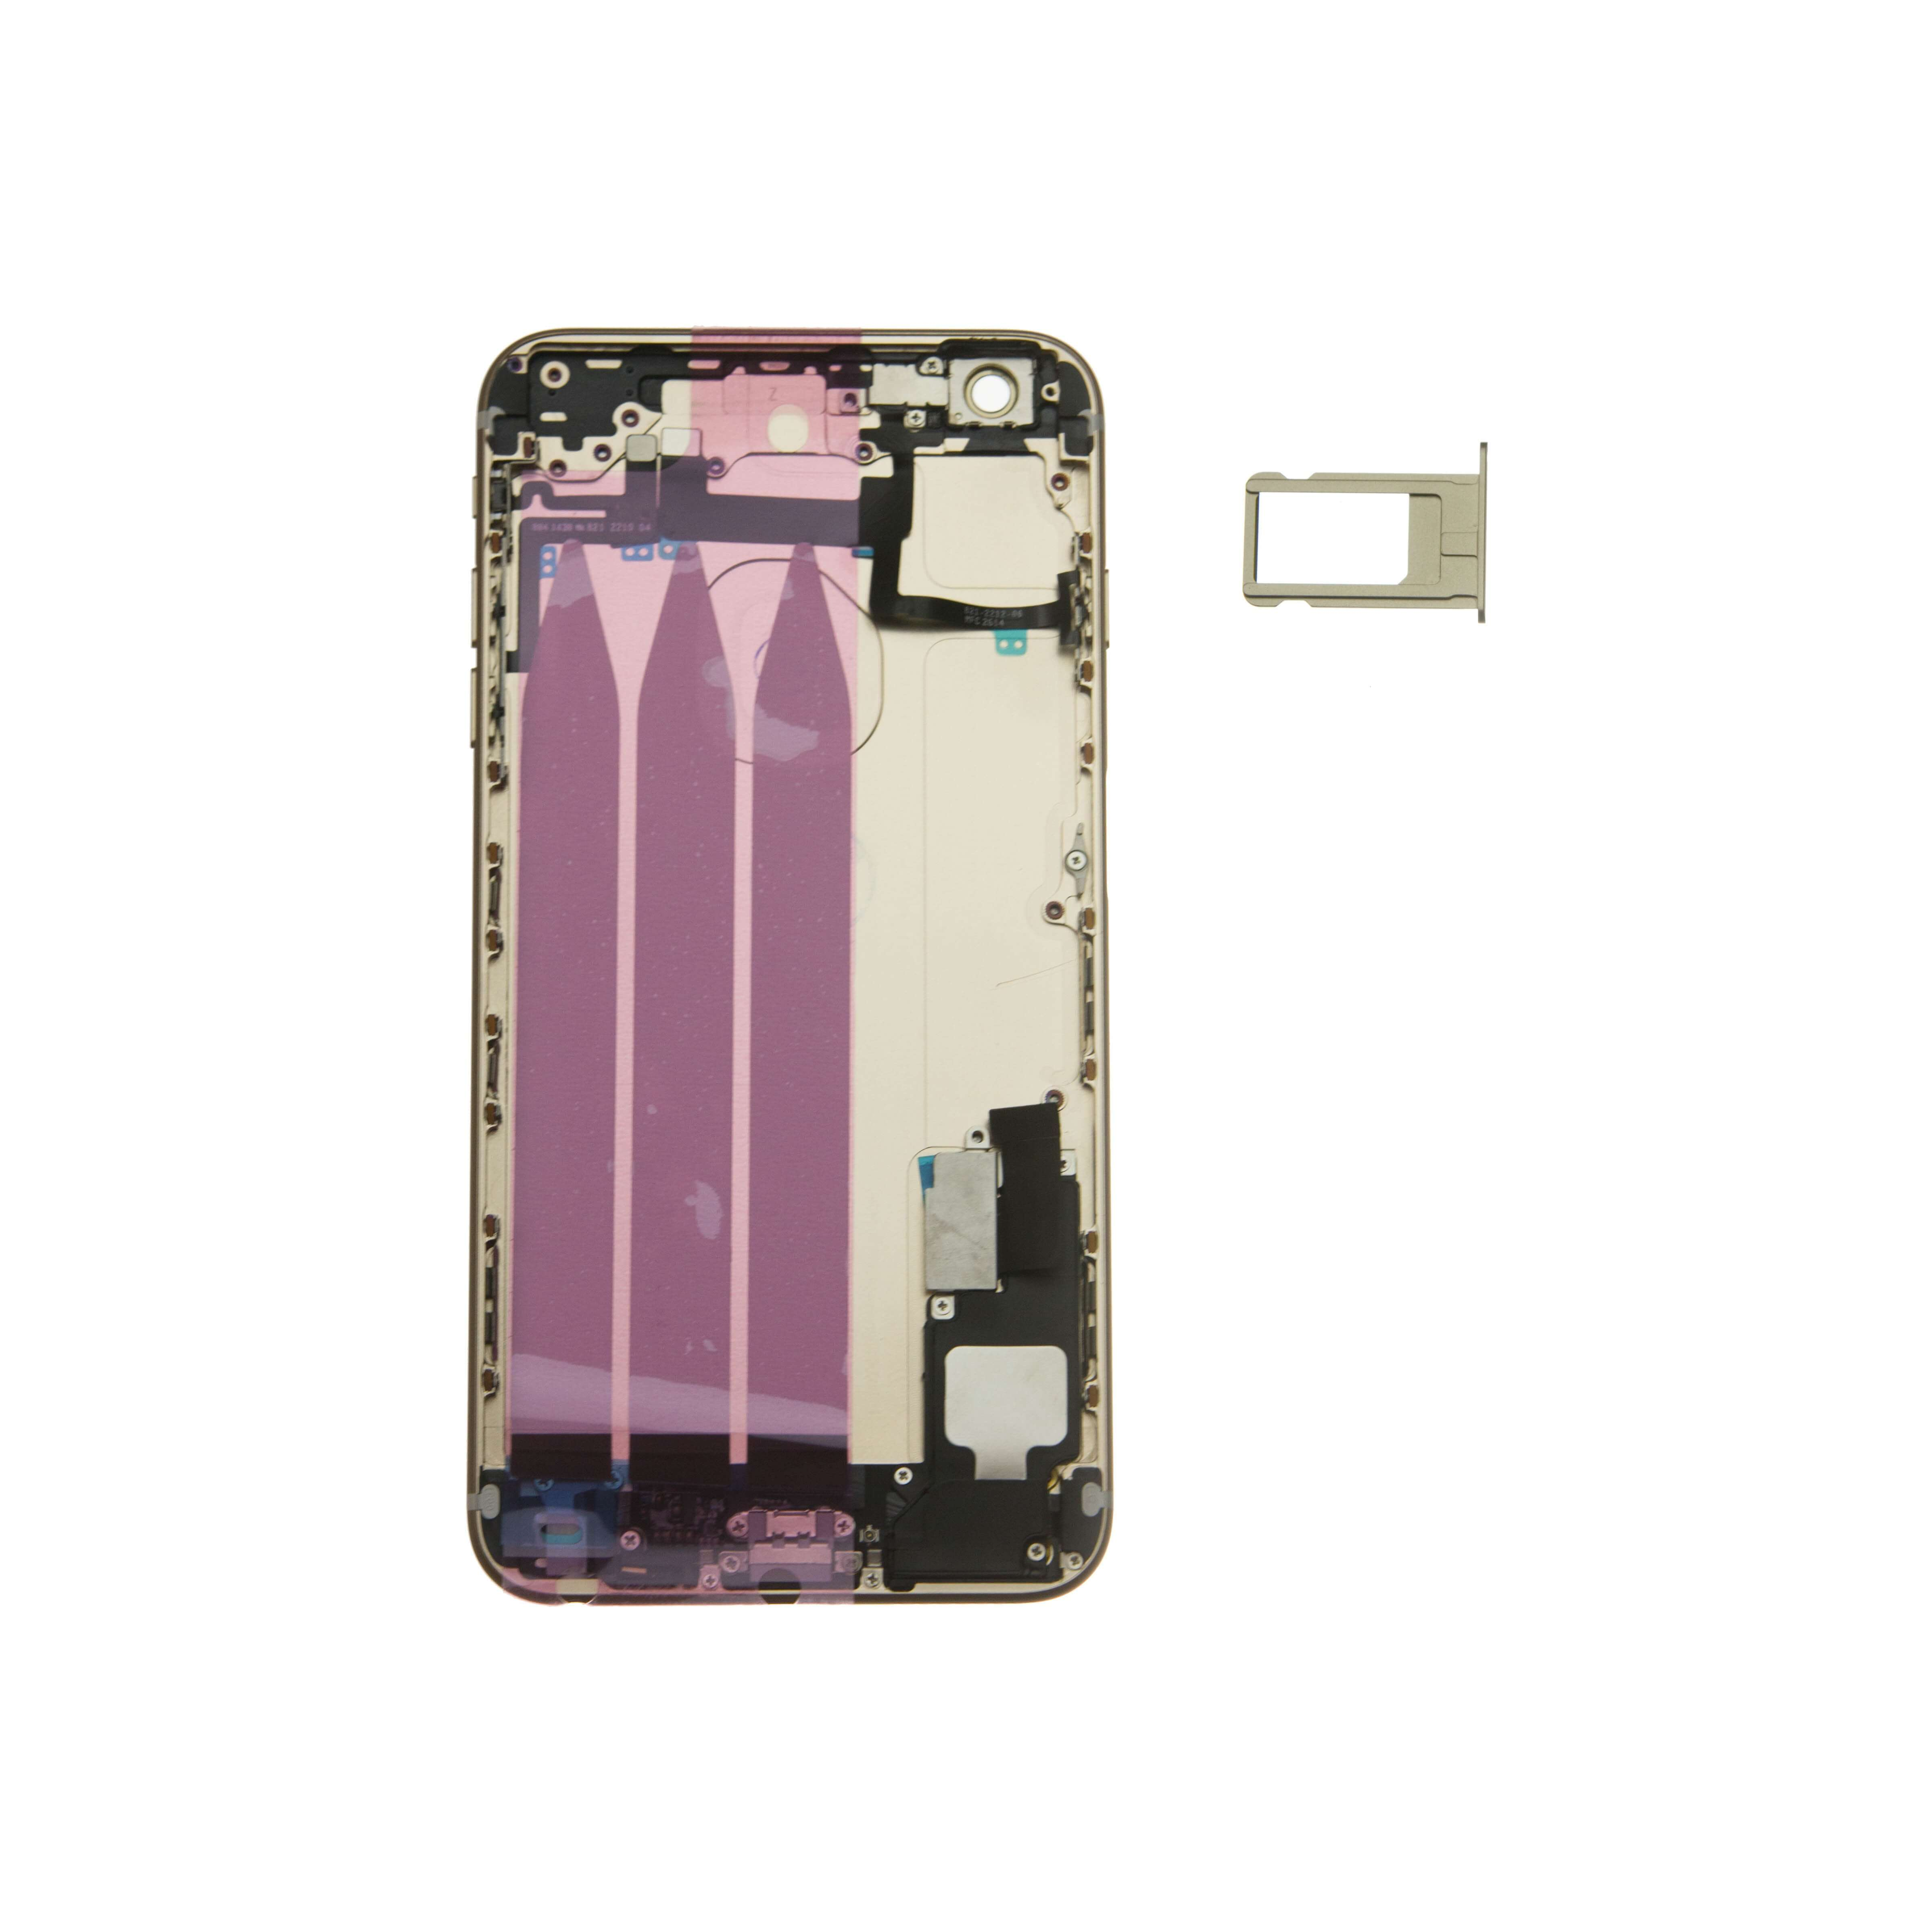 best service 32e48 cd185 Back Housing for use with iPhone 6 Plus (5.5